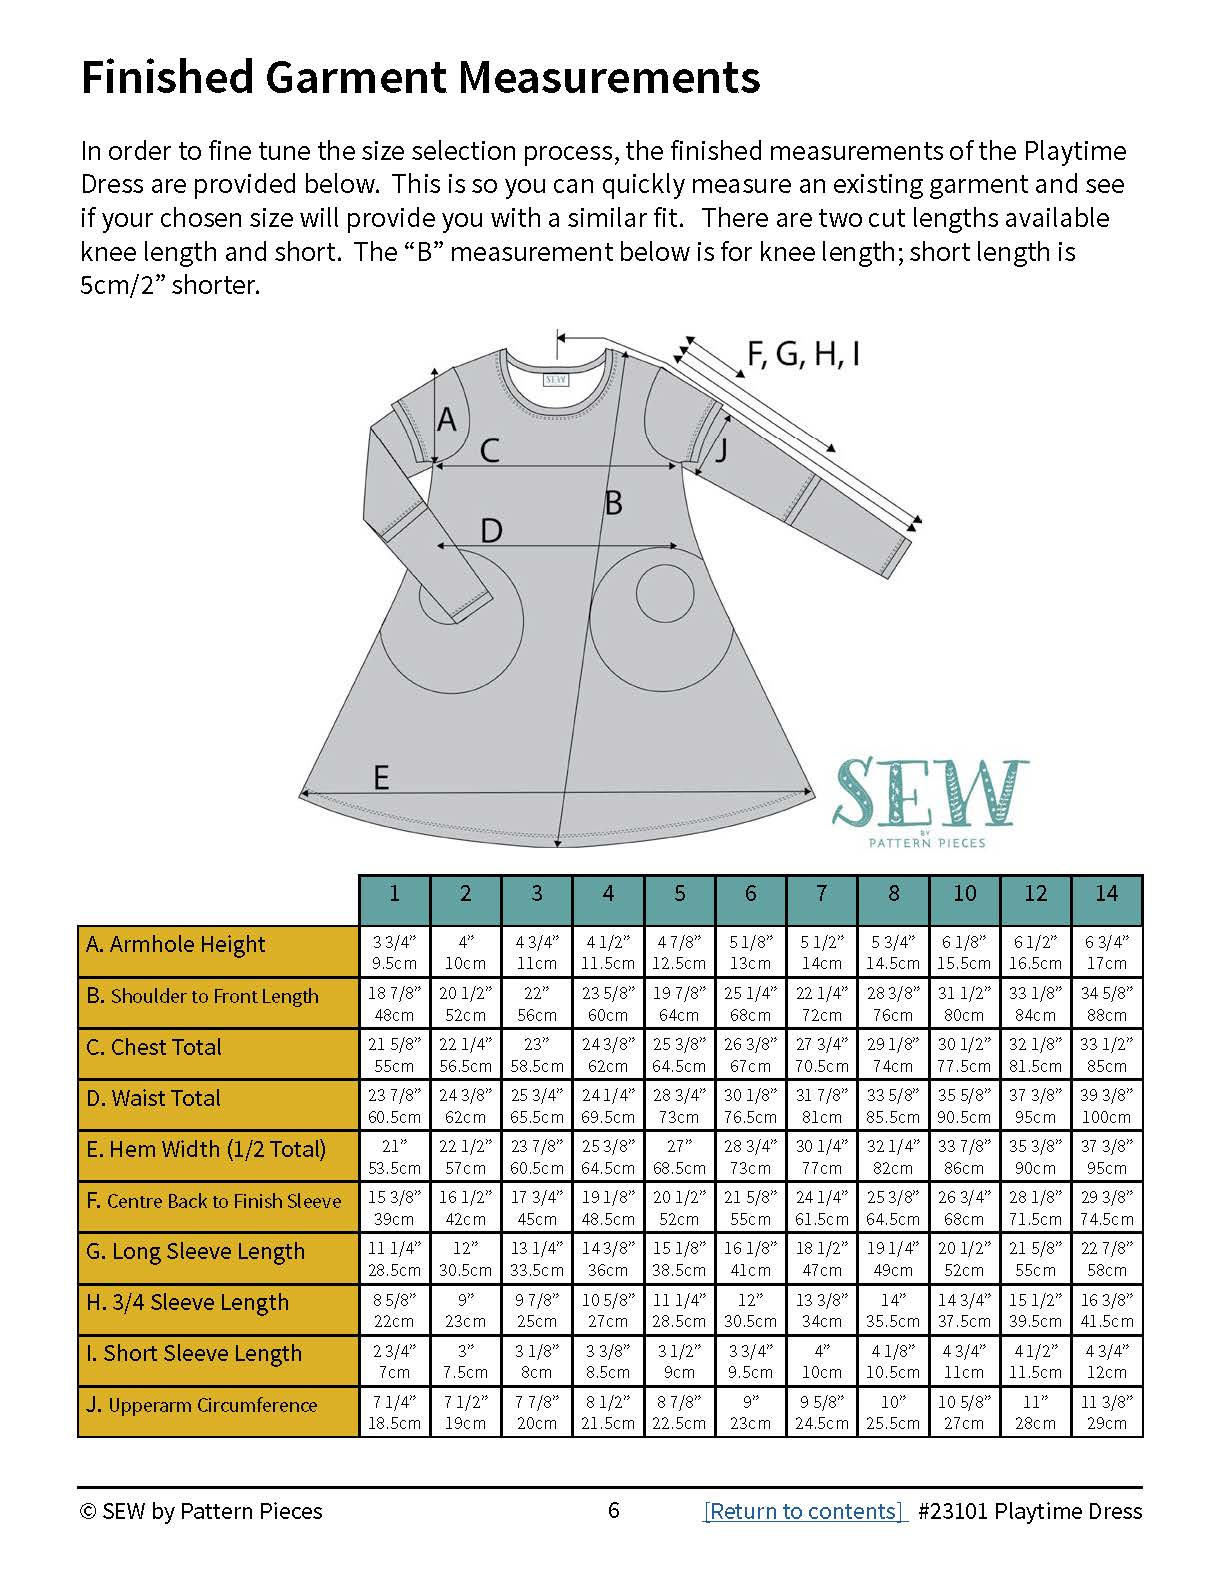 Playtime Dress finished garment measurements